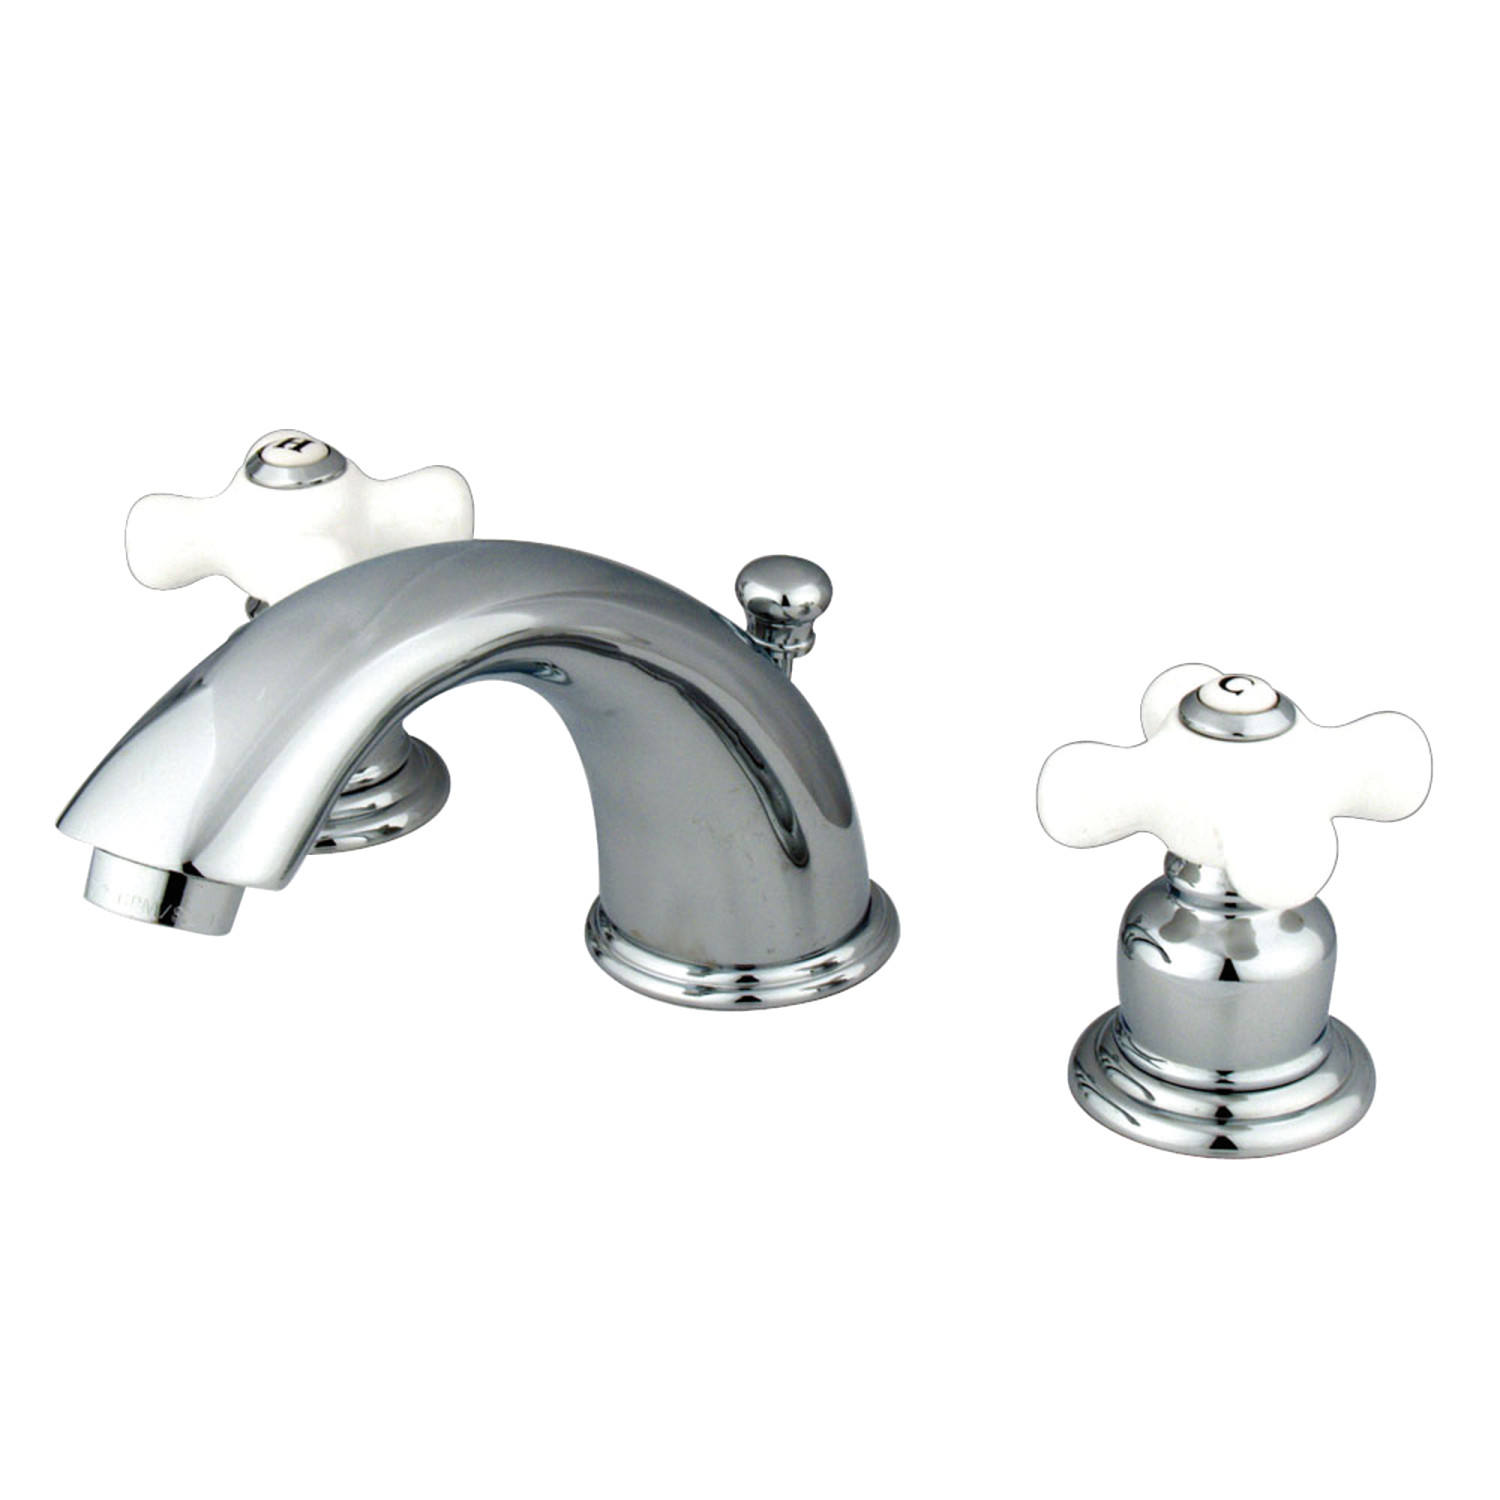 Vintage Two-Handle 3-Hole Deck Mounted Widespread Bathroom Faucet with Plastic Pop-Up in Polished Chrome